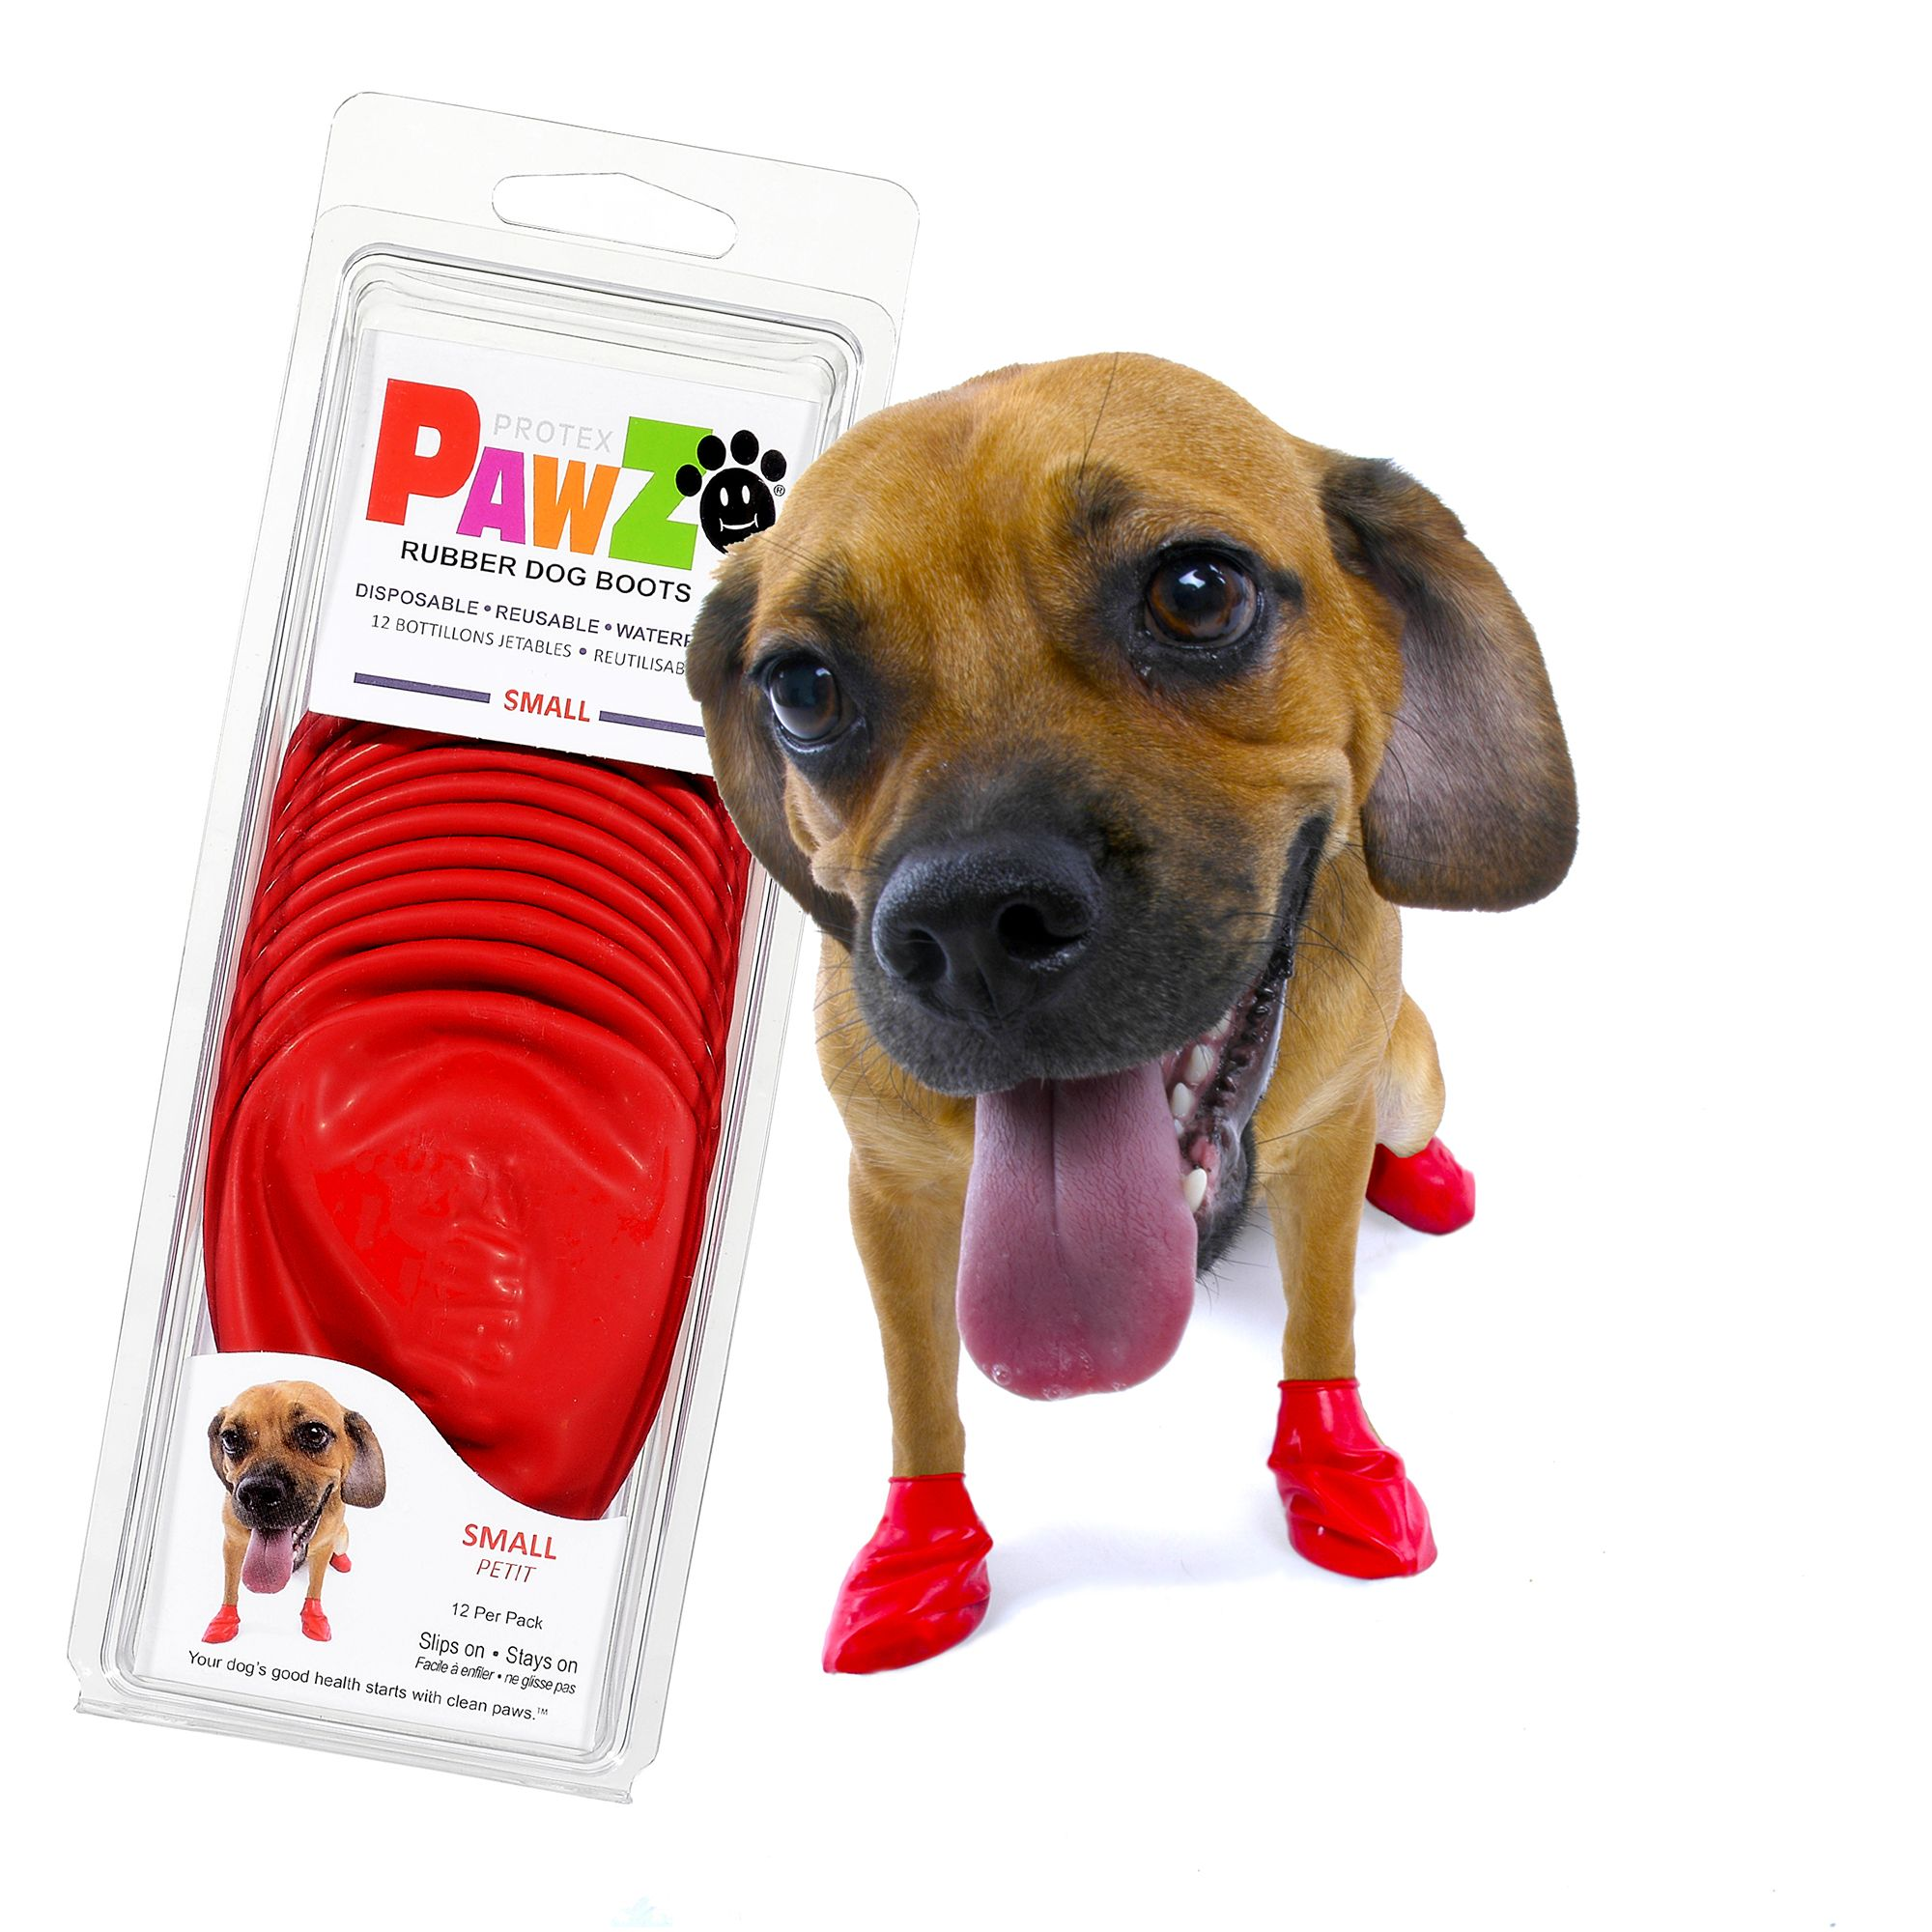 897515001031 UPC - Protex Pawz Dog Boots | UPC Lookup